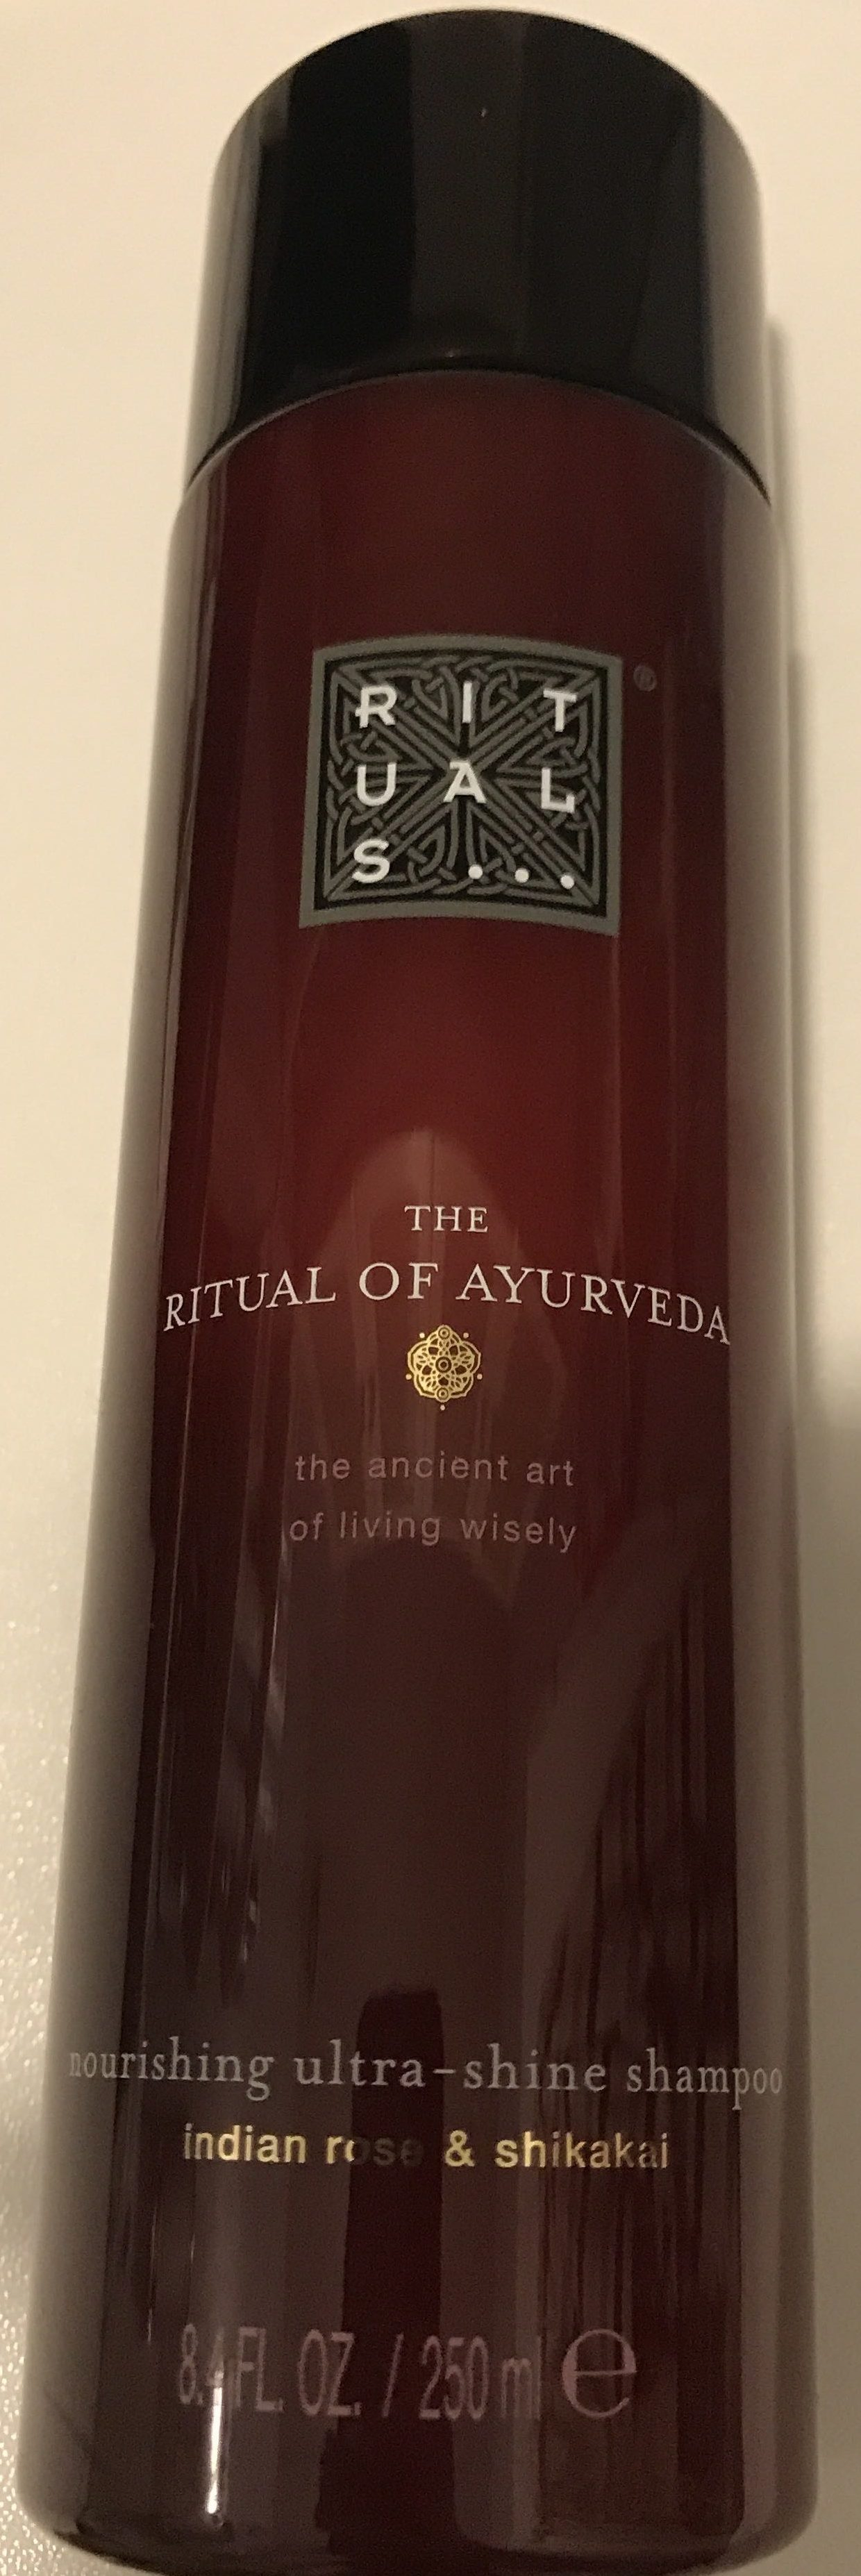 The Ritual of Ayurveda Nourishing Ultra-Shine Shampoo - Produit